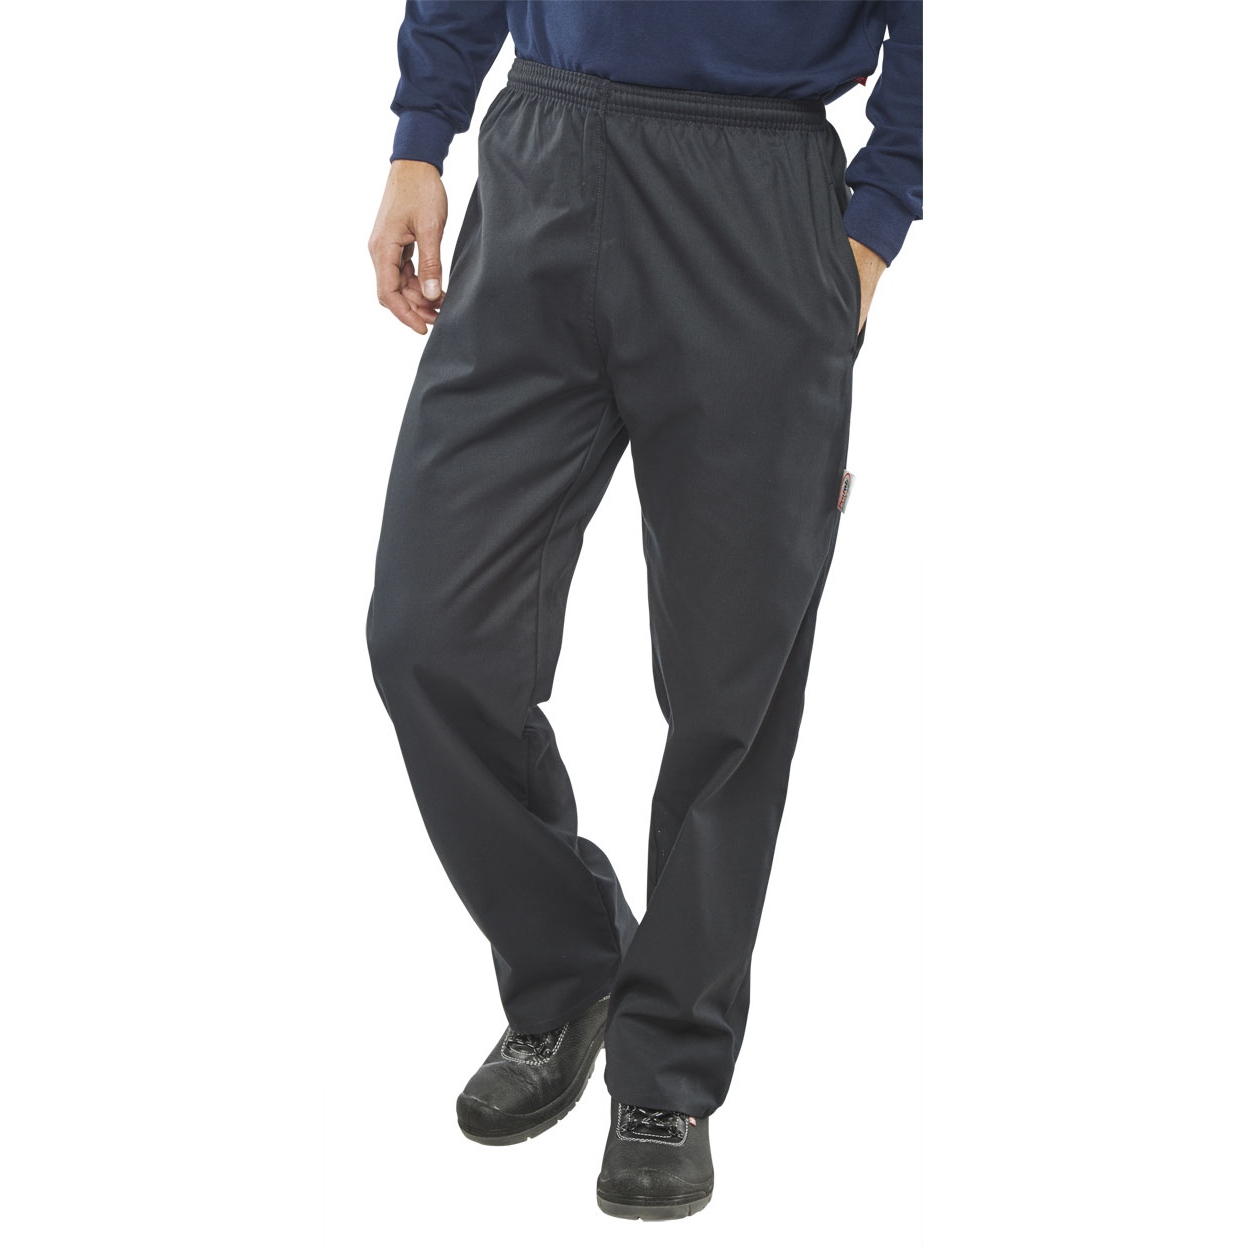 Fire Retardant / Flame Resistant Click Fire Retardant Protex Trousers 2XL Navy Blue Ref CFRPTNXXL *Up to 3 Day Leadtime*